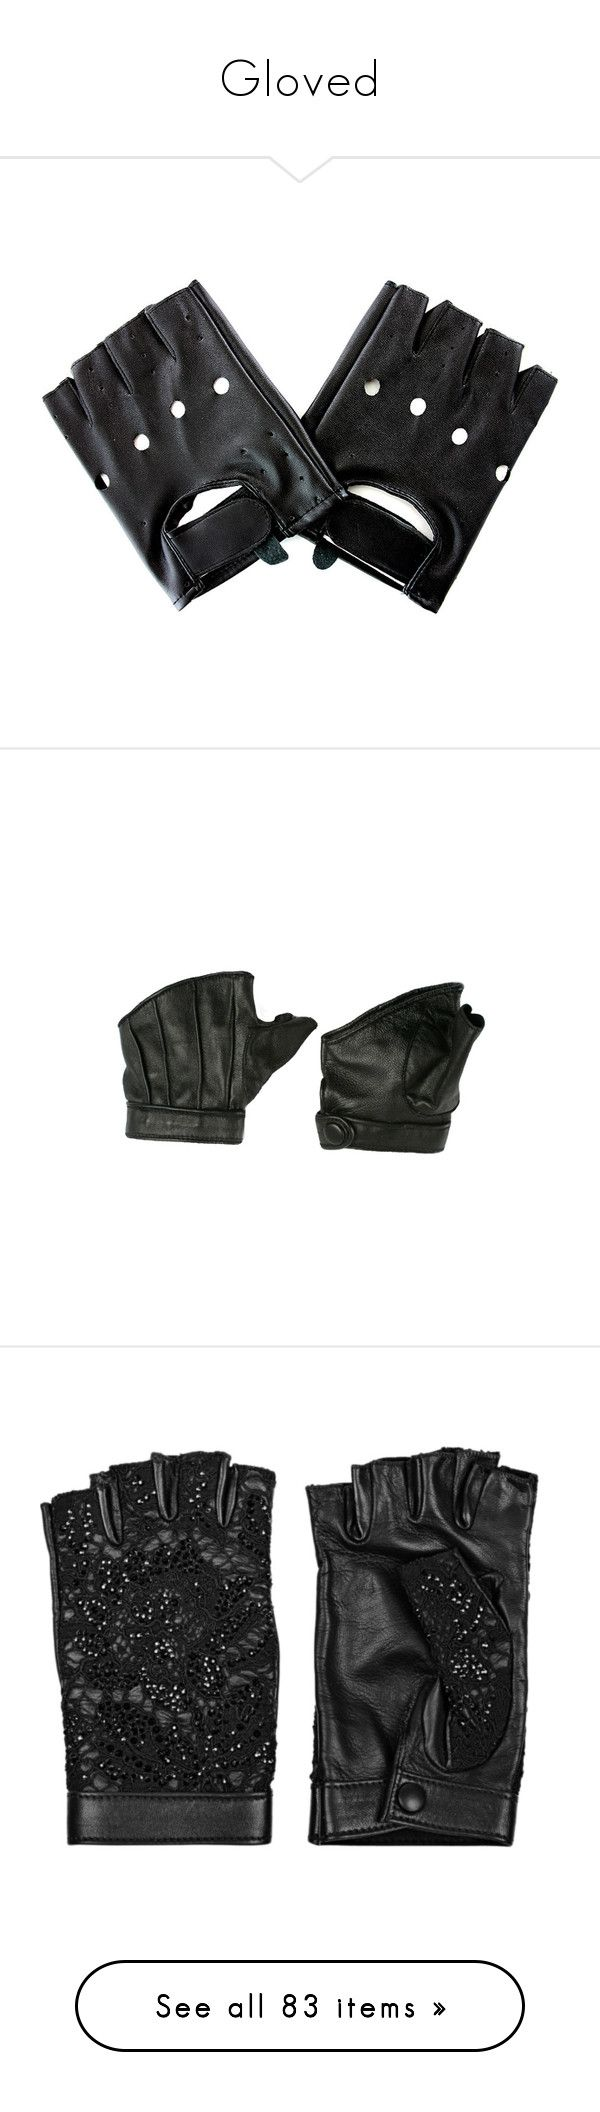 Black leather gloves cape town -  Gloved By Ugly Boi Liked On Polyvore Featuring Accessories Gloves